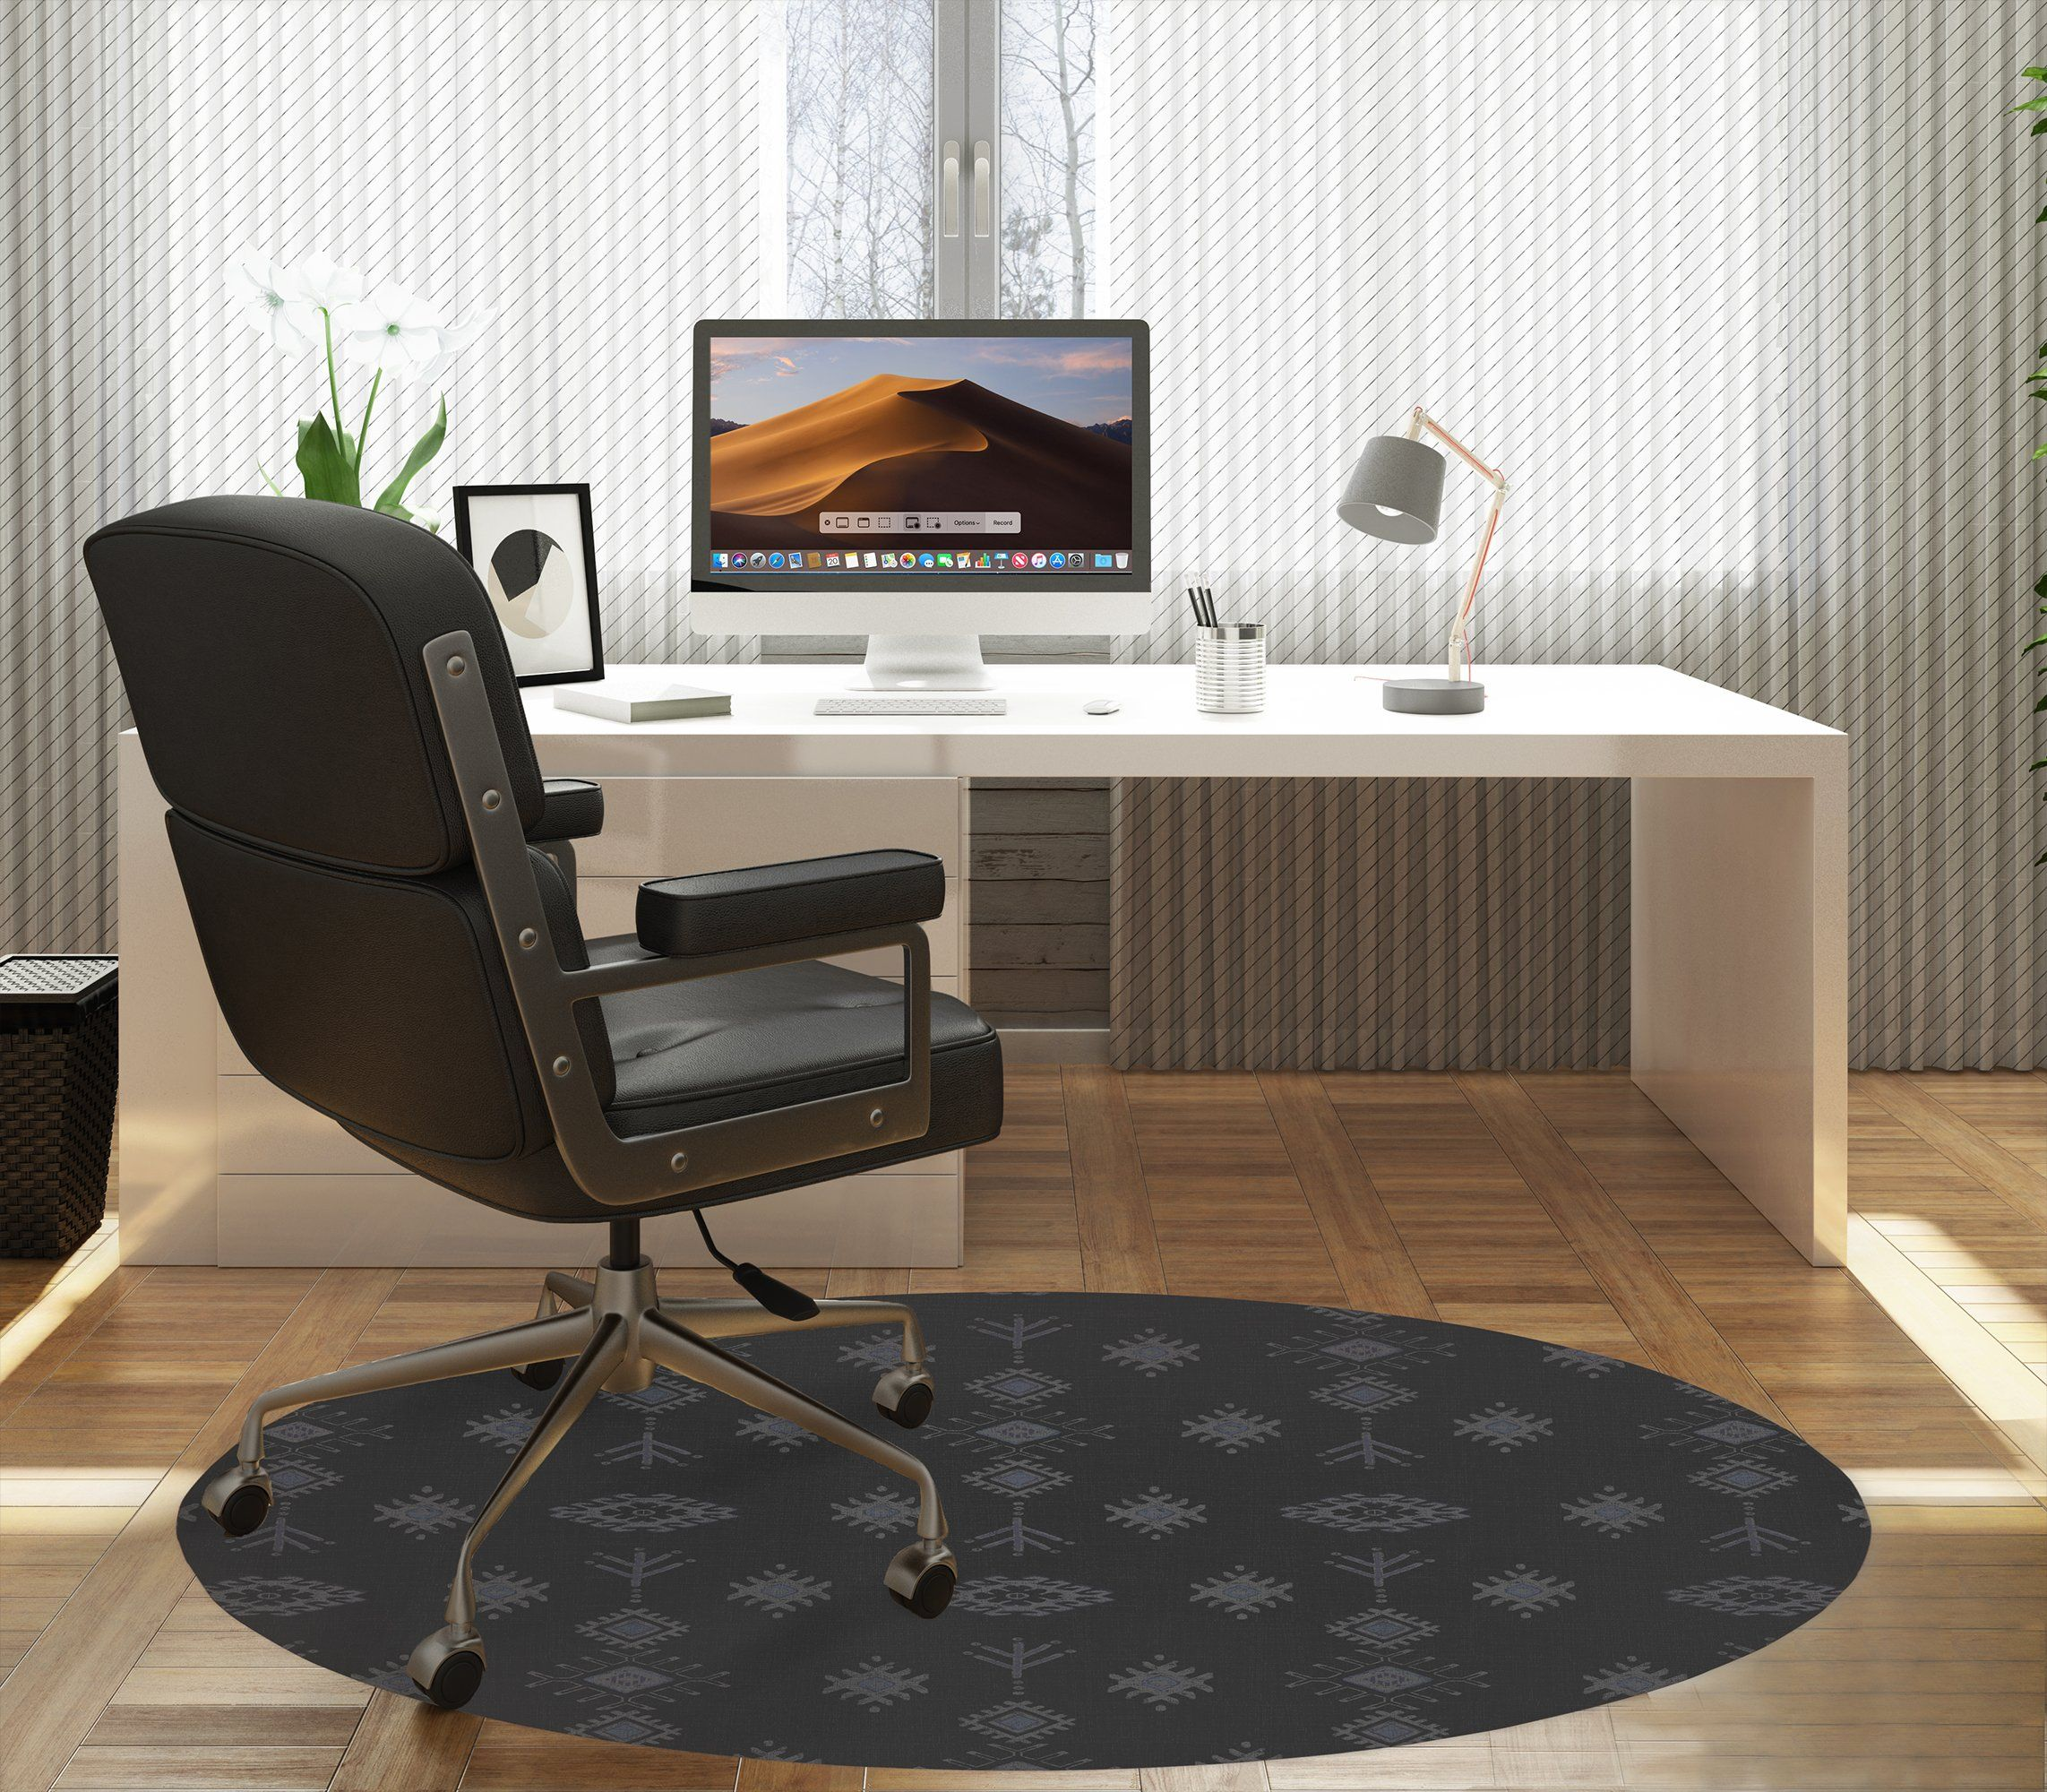 KILIM CHARCOAL Office Mat By Kavka Designs – Round 5ft x 5ft